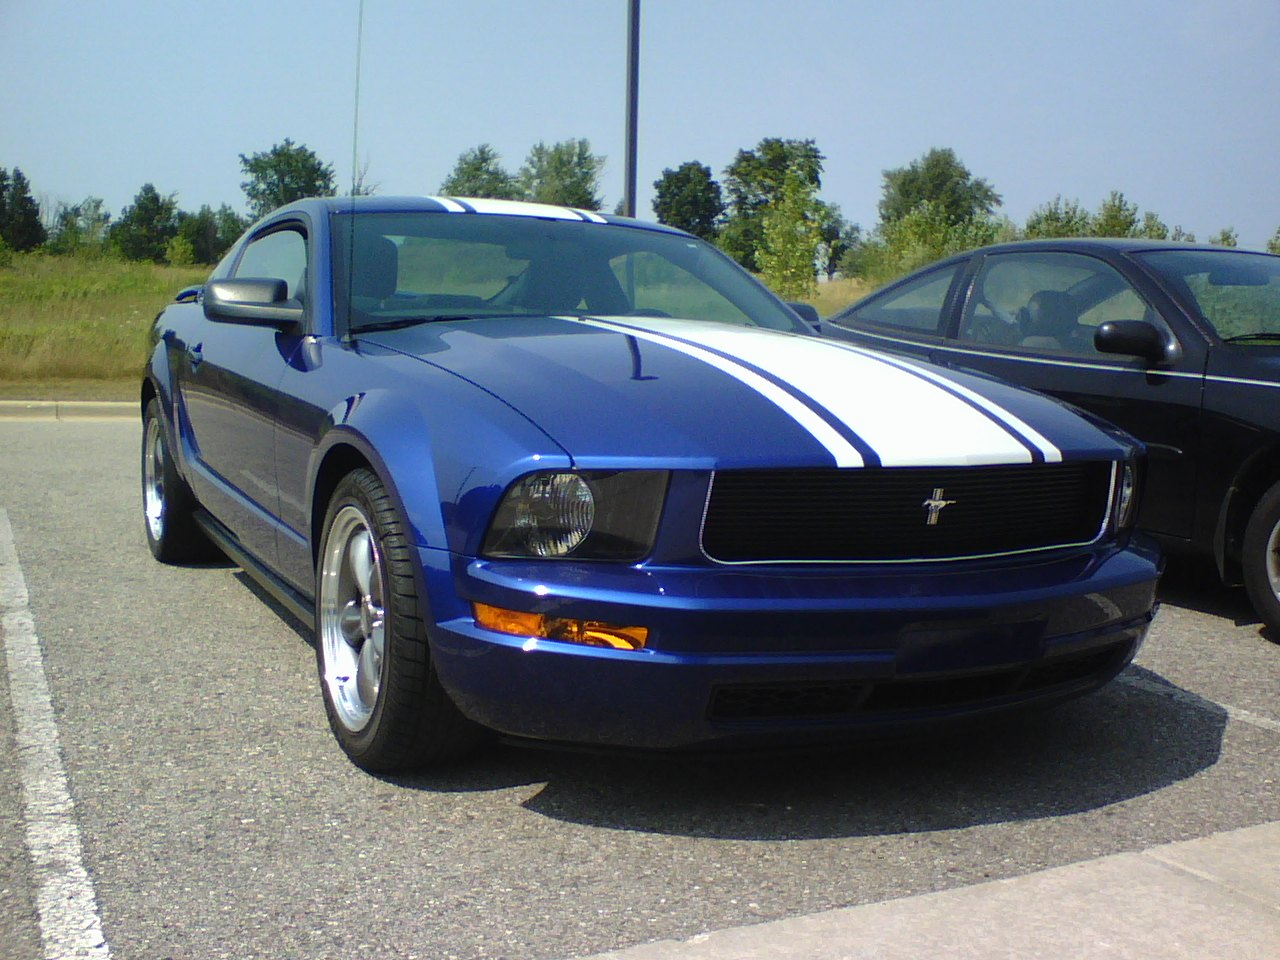 2005 ford mustang v6 picture mods upgrades